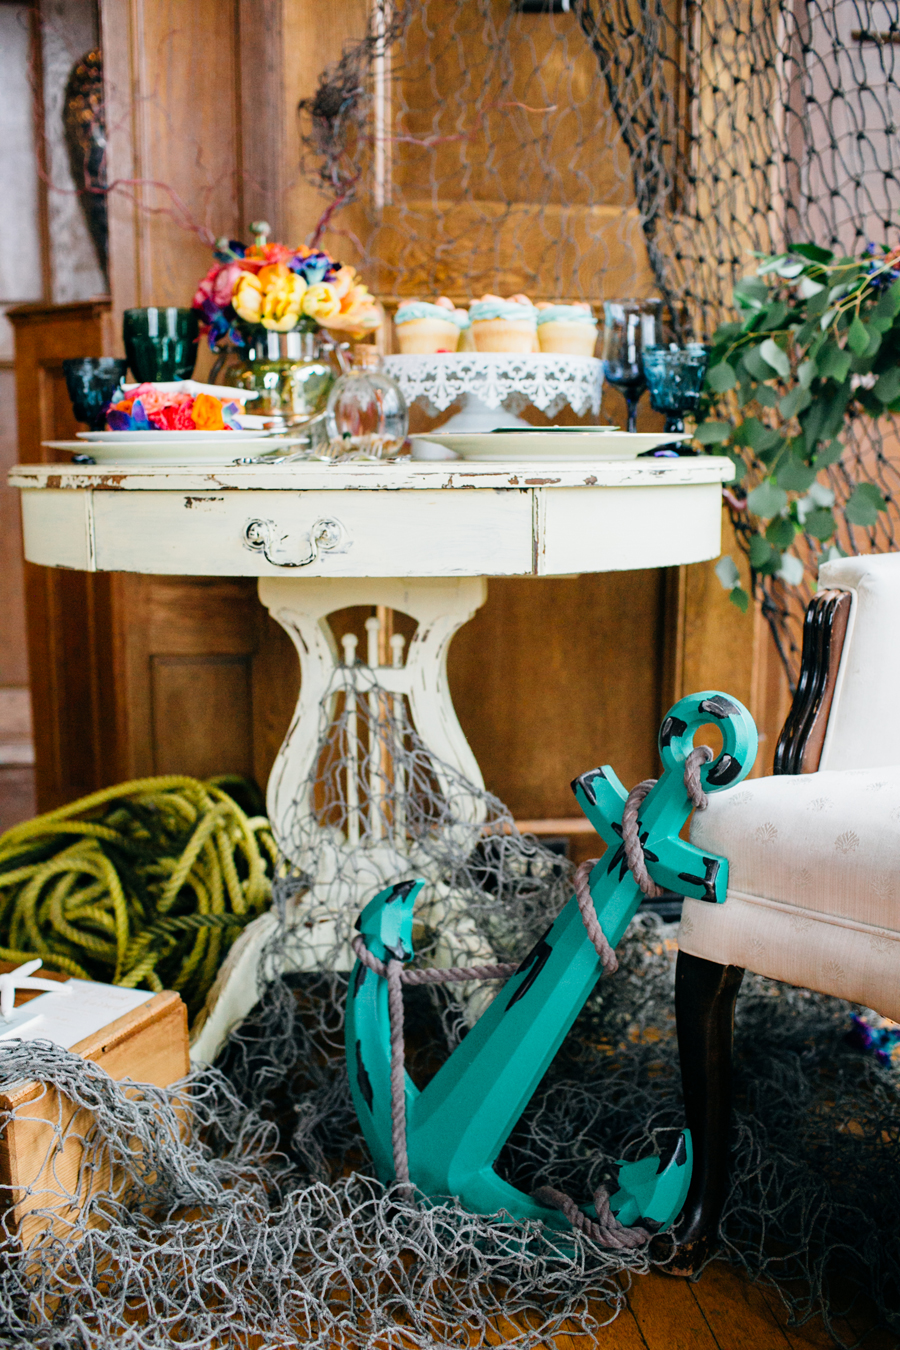 008-under-the-sea-styled-session-lairmont-manor-katheryn-moran-photography.jpg